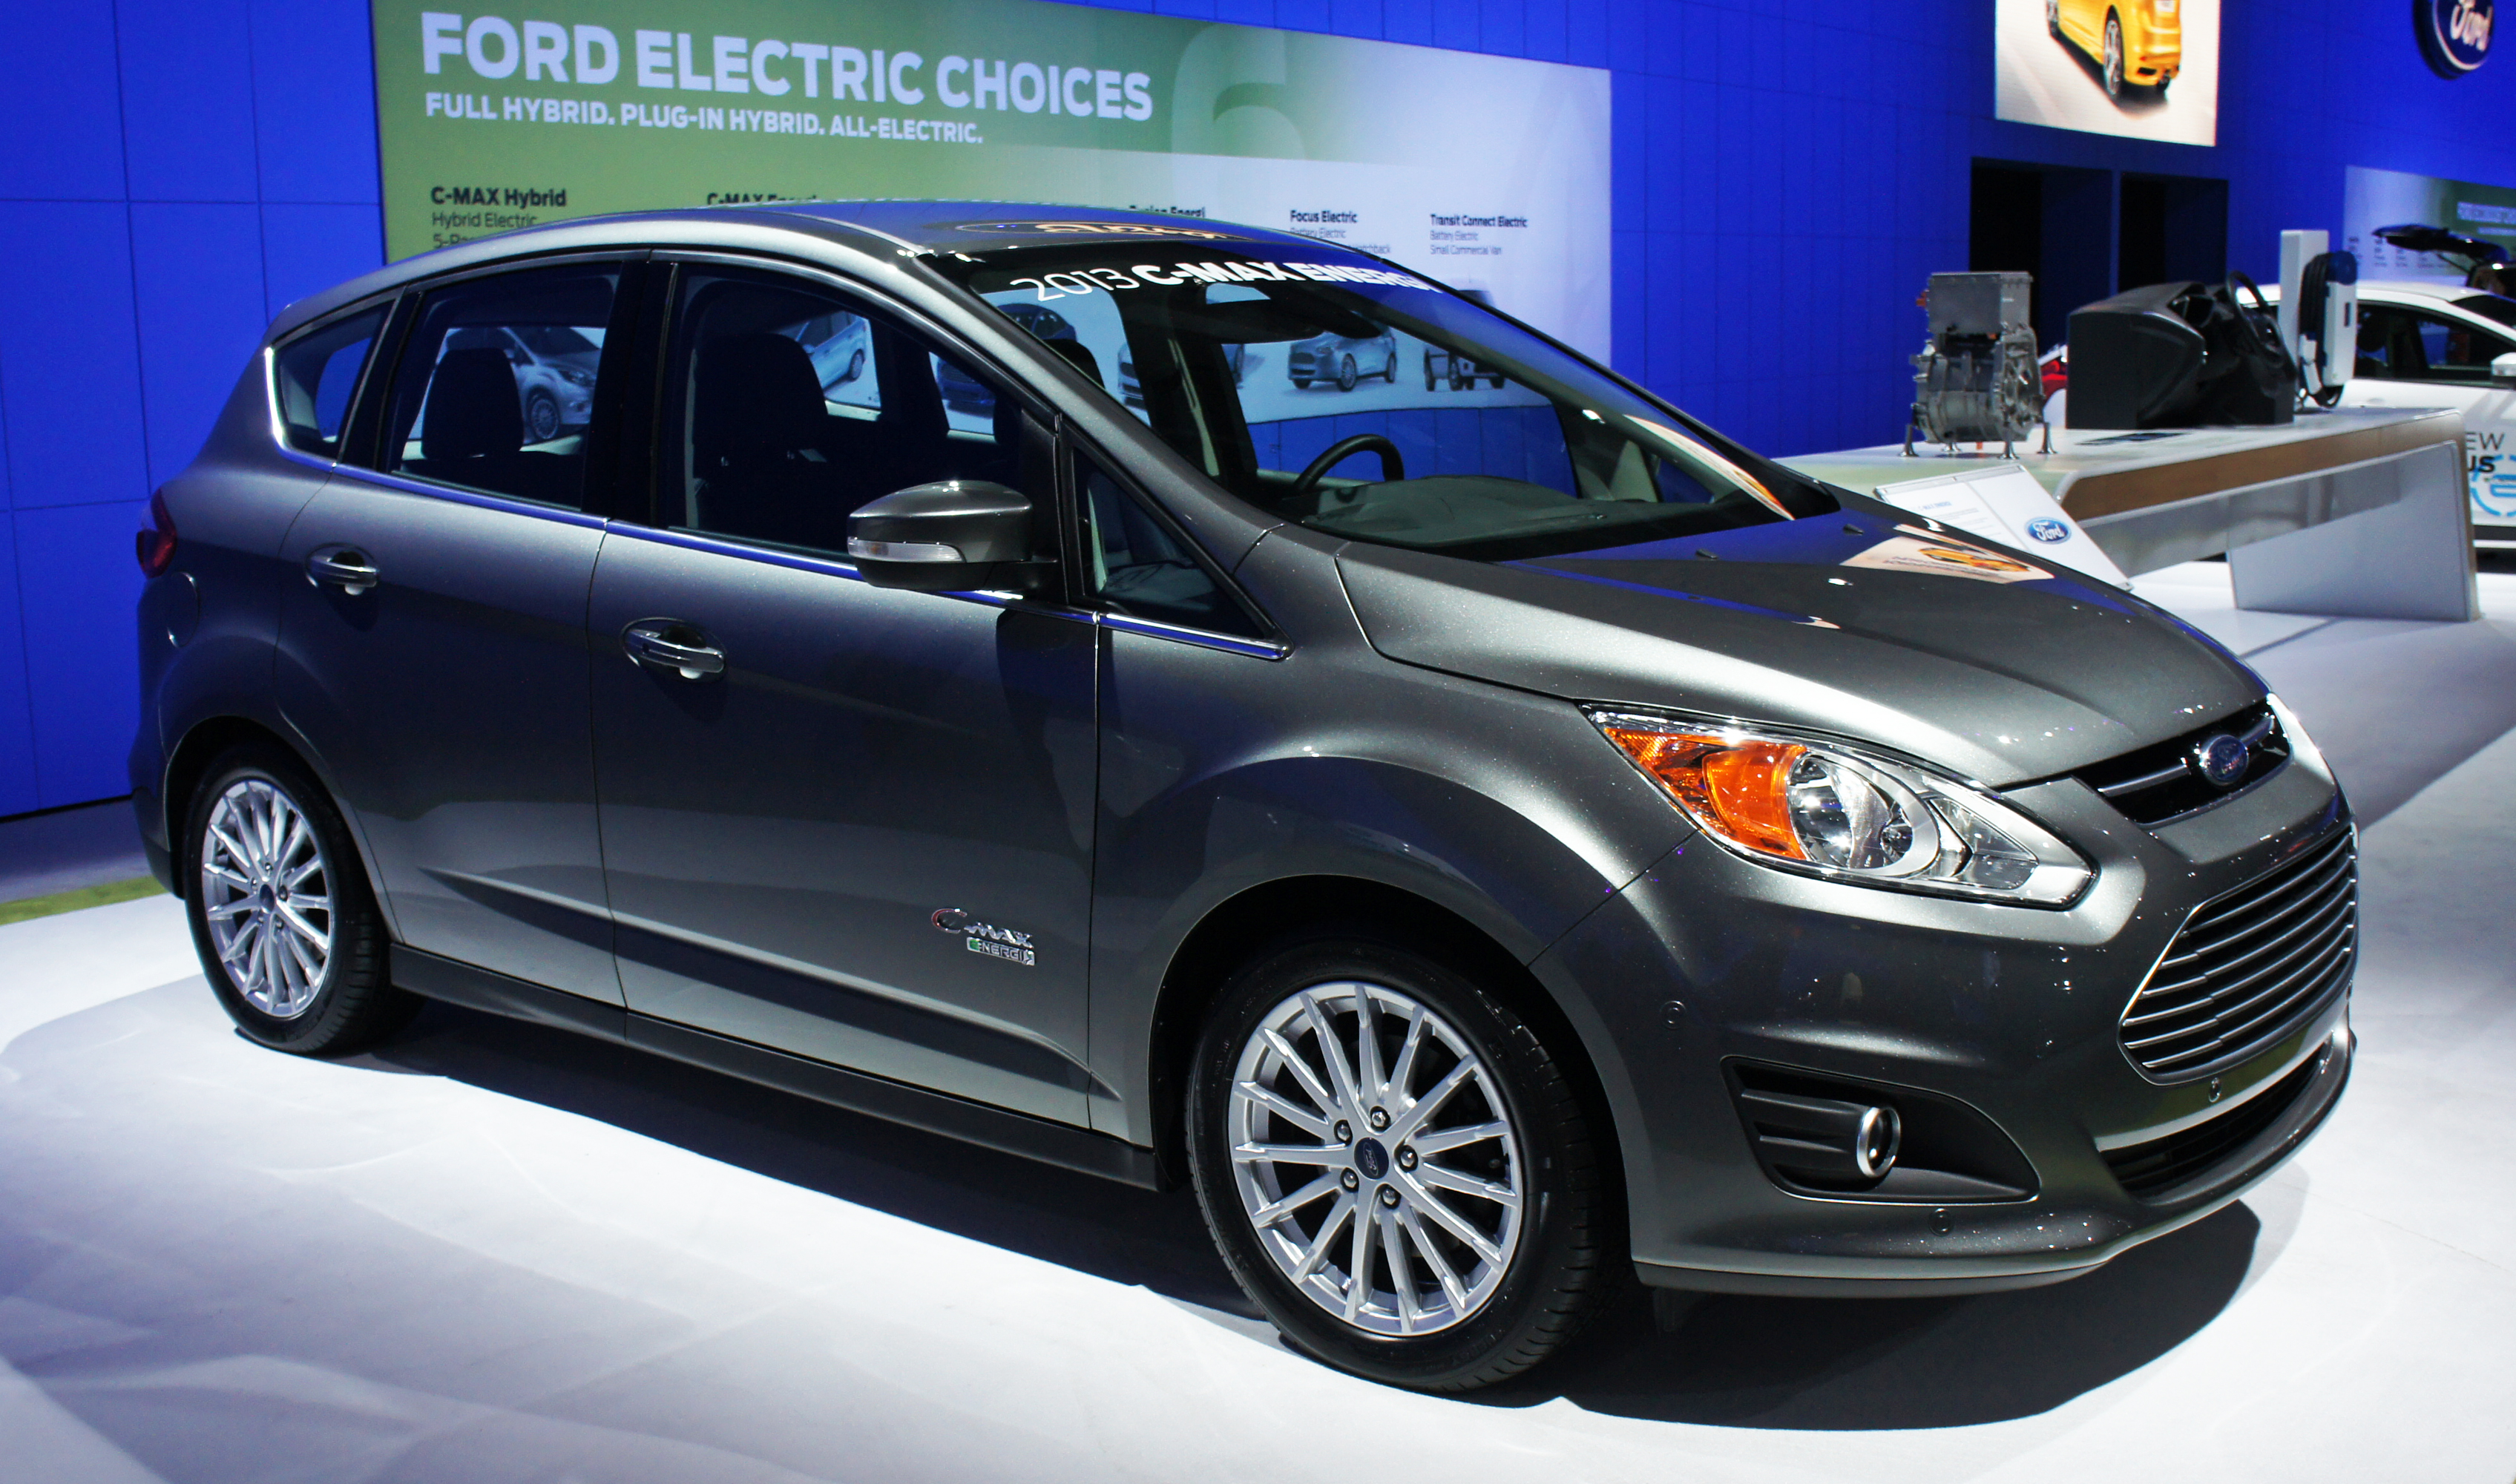 Ford C-max Hybrid Photos, Informations, Articles - BestCarMag.com